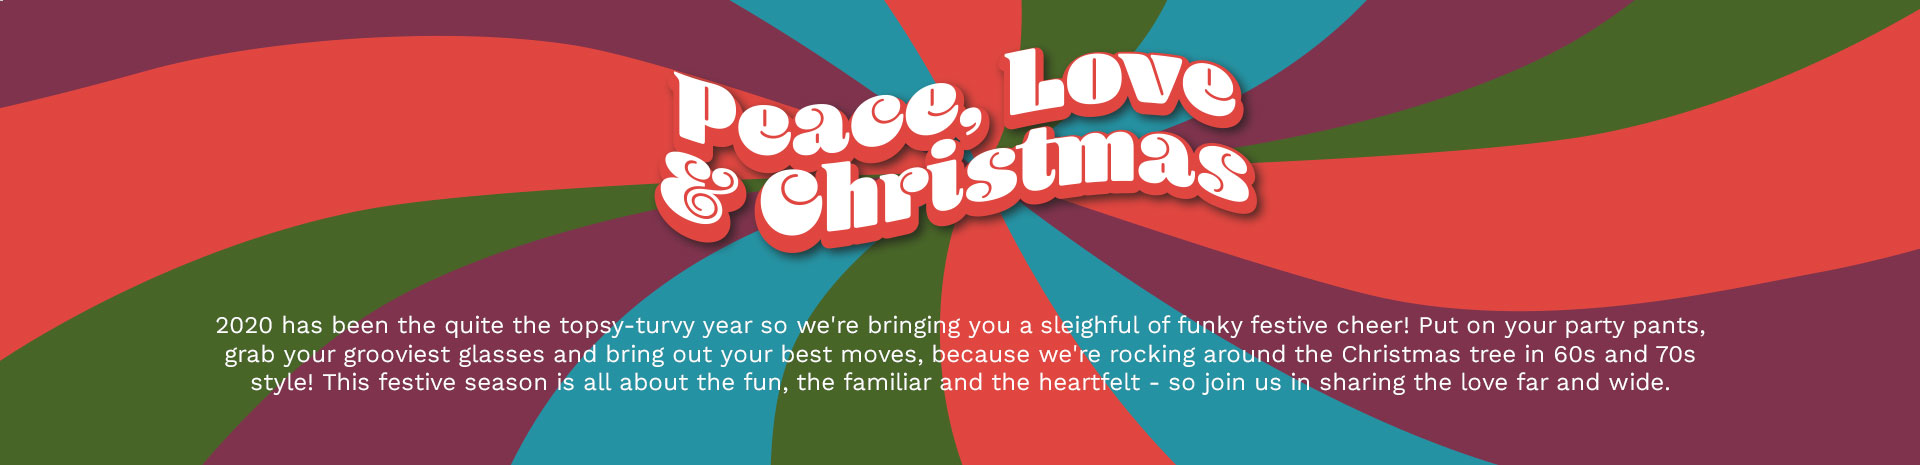 Peace, love and Christmas